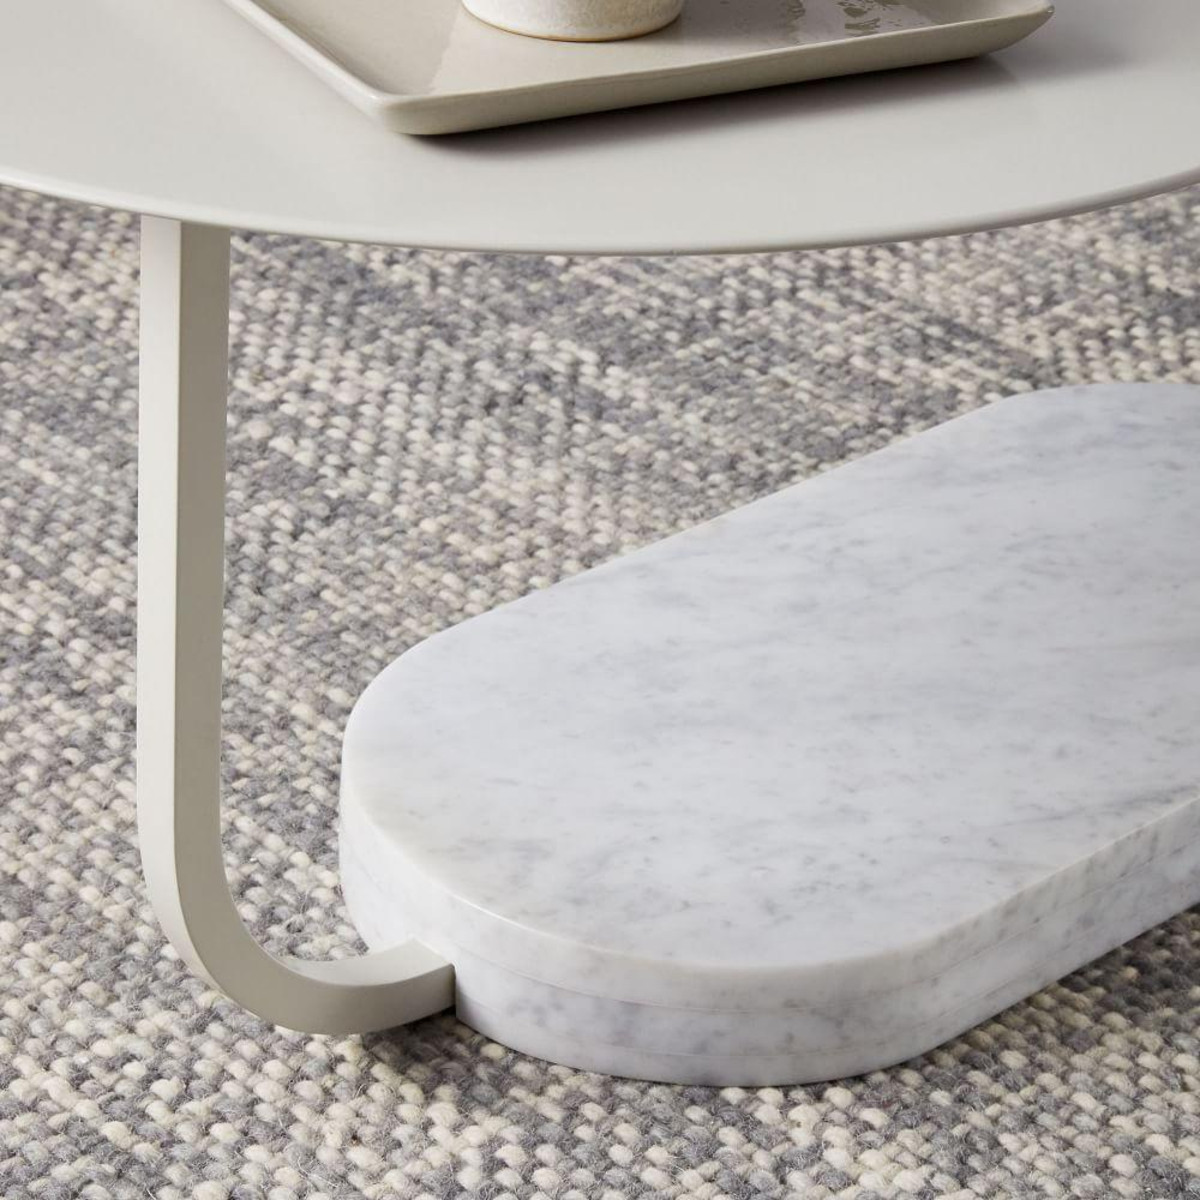 With its solid marble base and lacquered top, it's a streamlined piece that also works well in smaller spaces. - West Elm